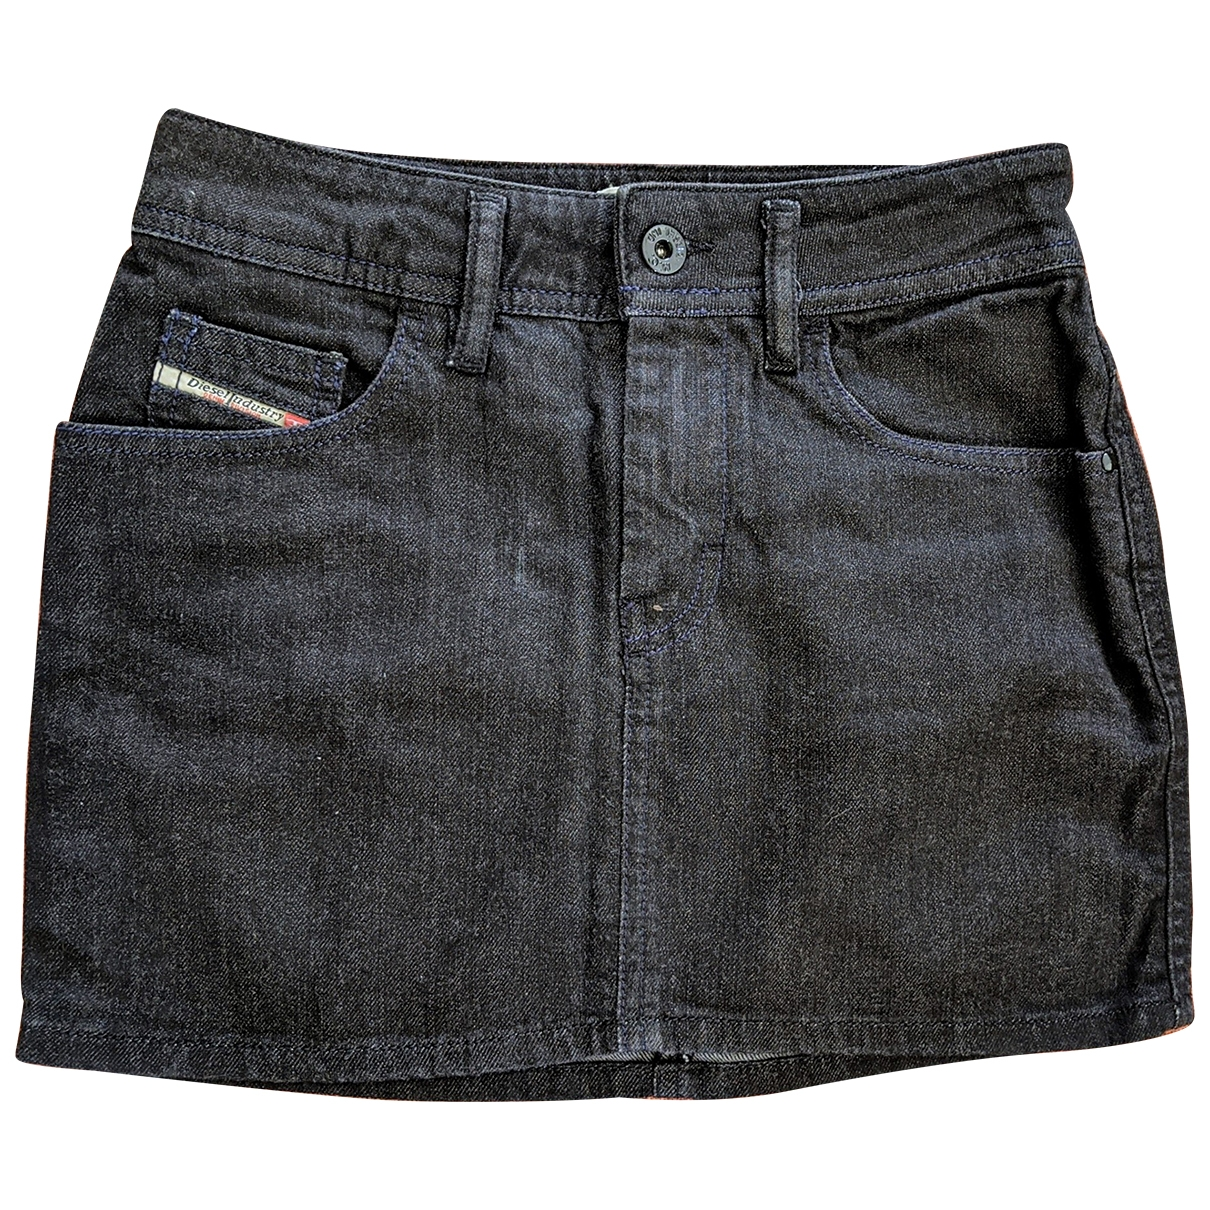 Diesel \N Black Denim - Jeans skirt for Women XS International